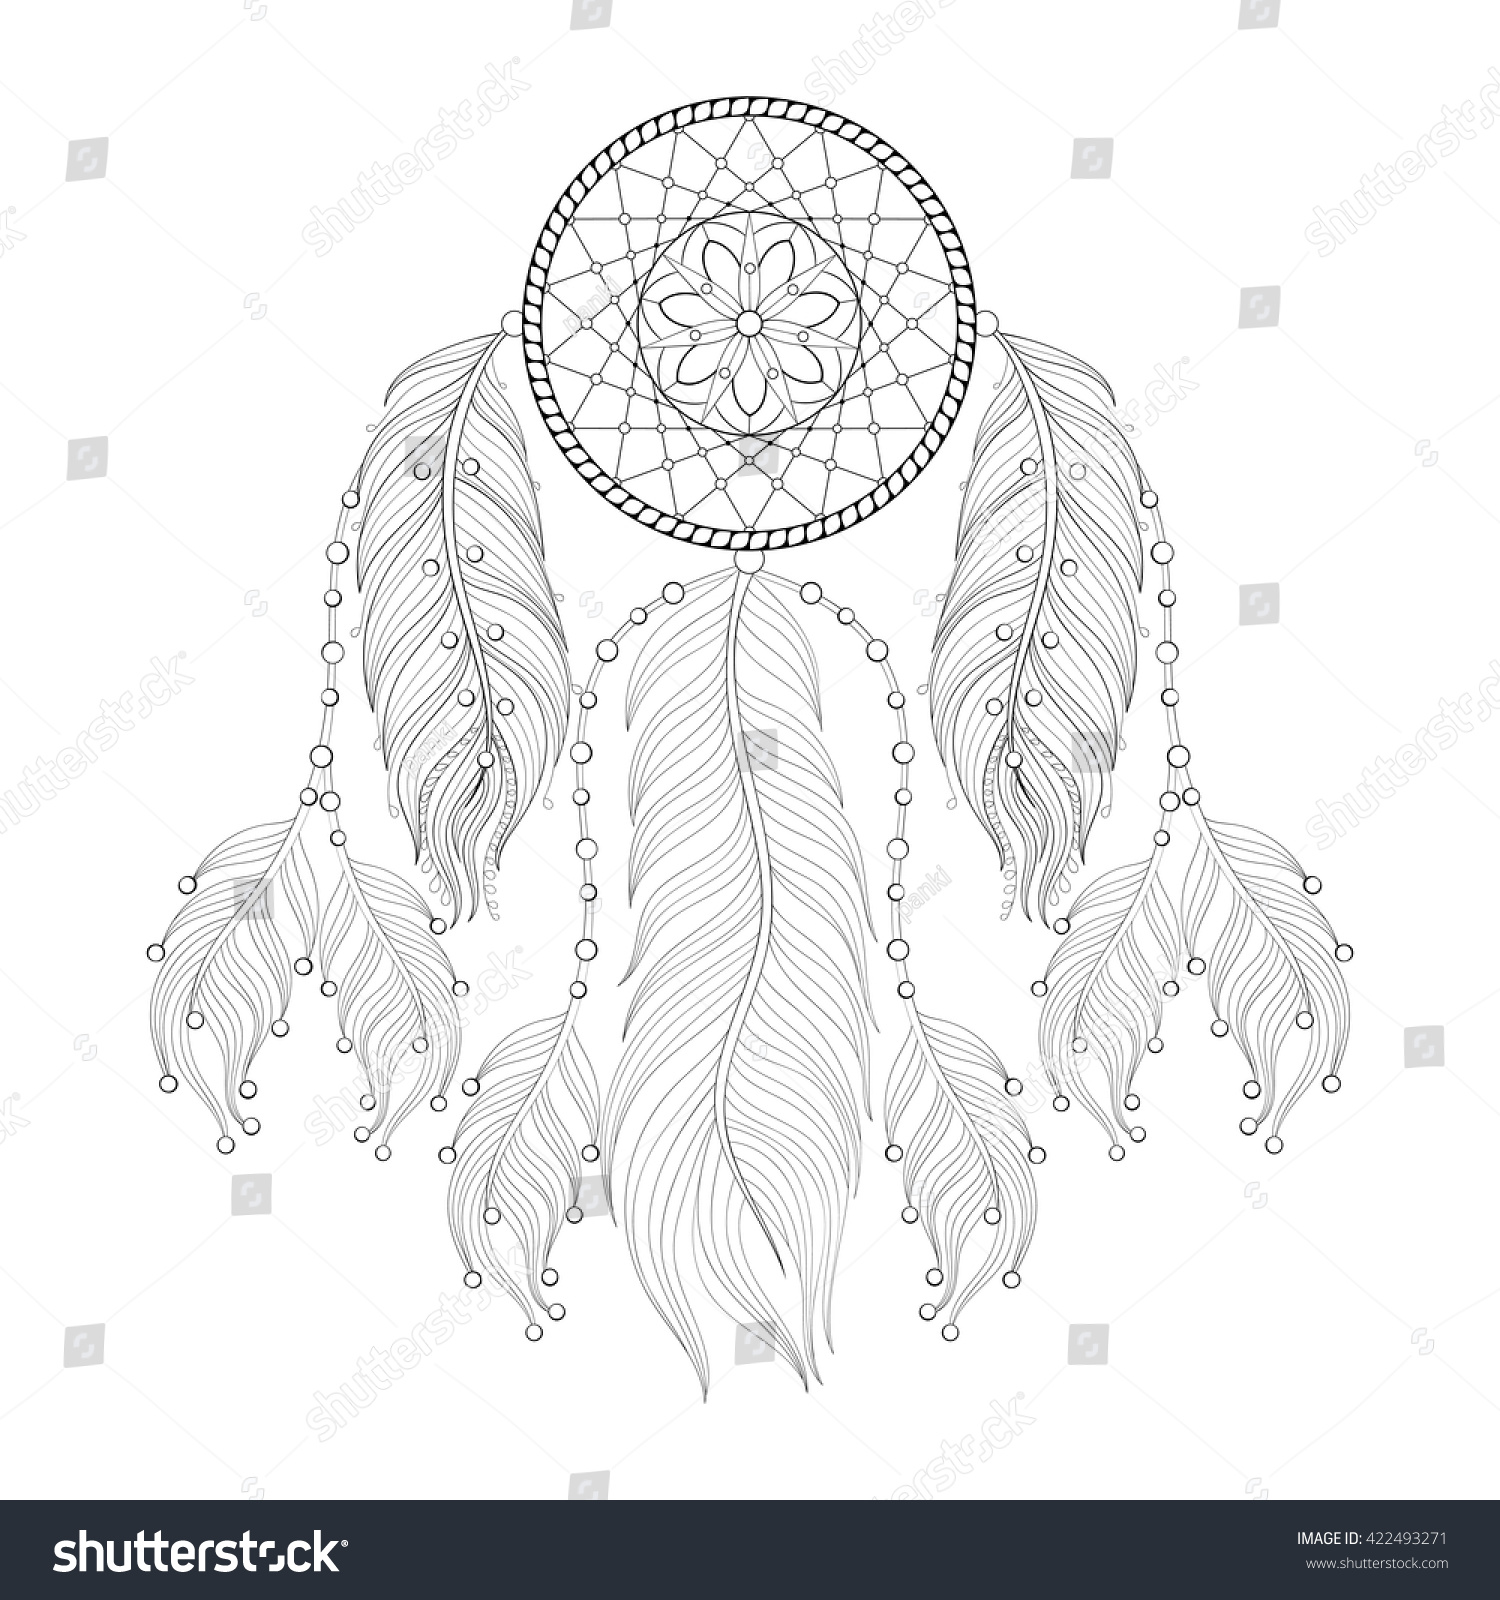 Coloring pages of mehndi hand pattern - Hand Drawn Zentangle Dream Catcher With Mehendi Mandala Feathers For Adult Coloring Pages Post